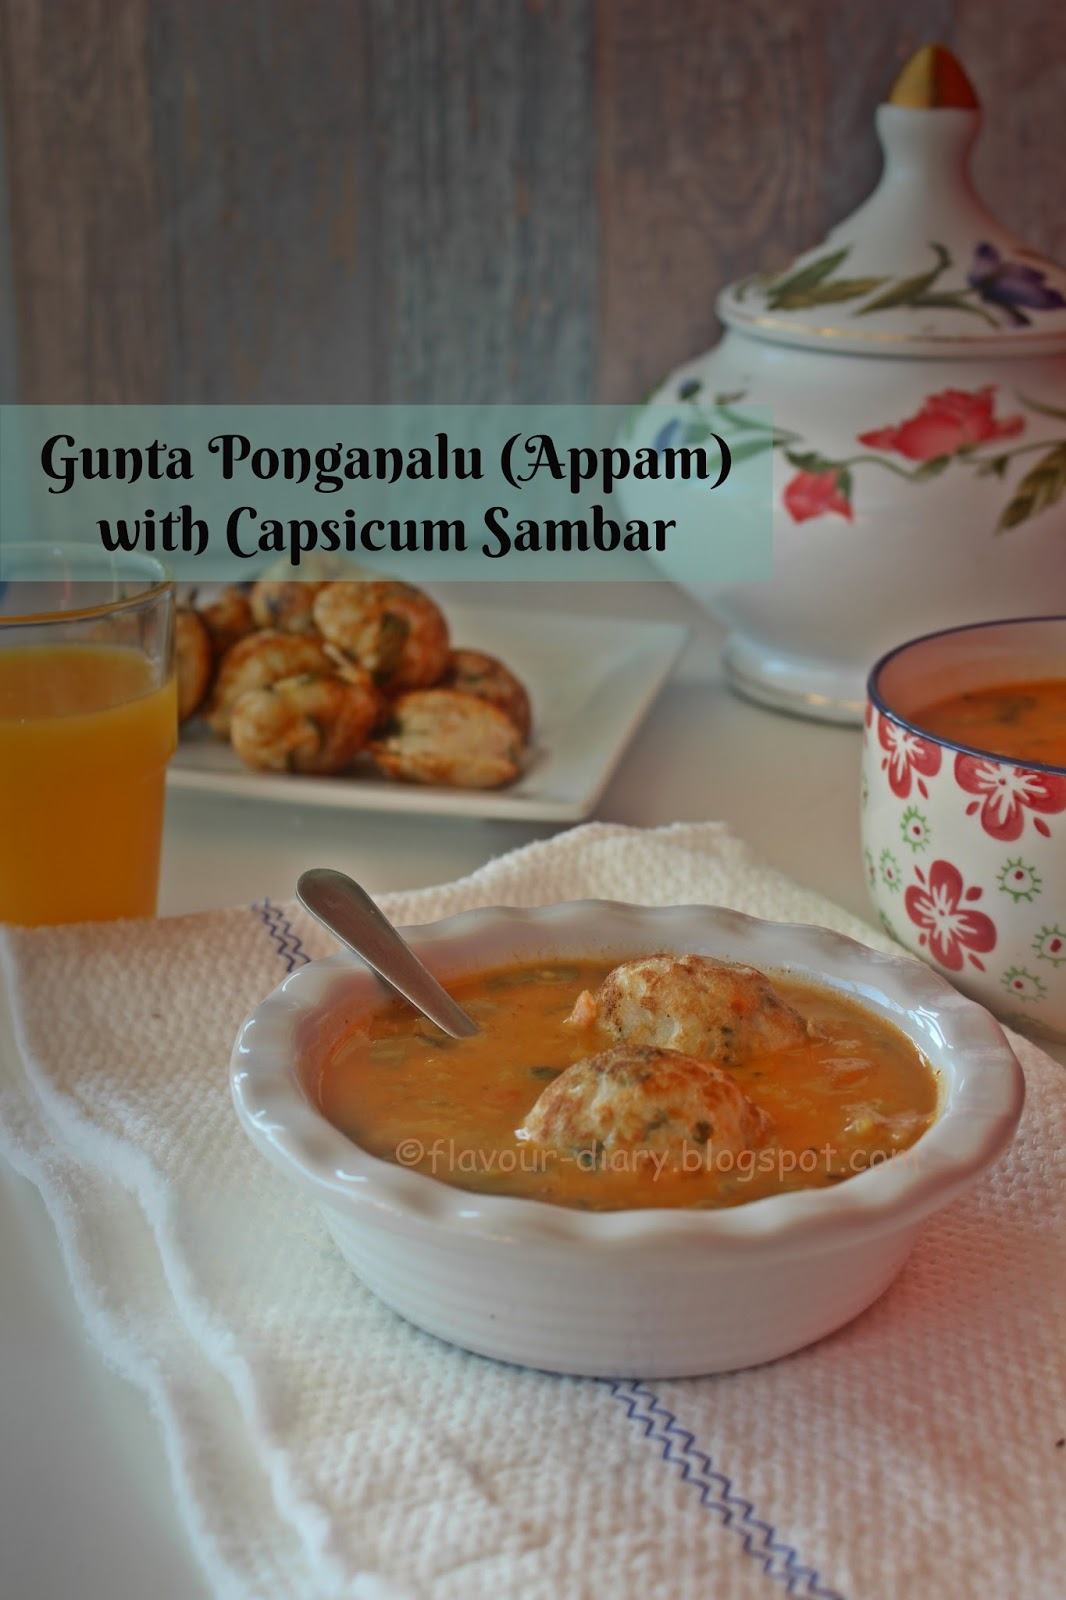 Gunta Ponganalu Appam with Capsicum Sambar Recipe